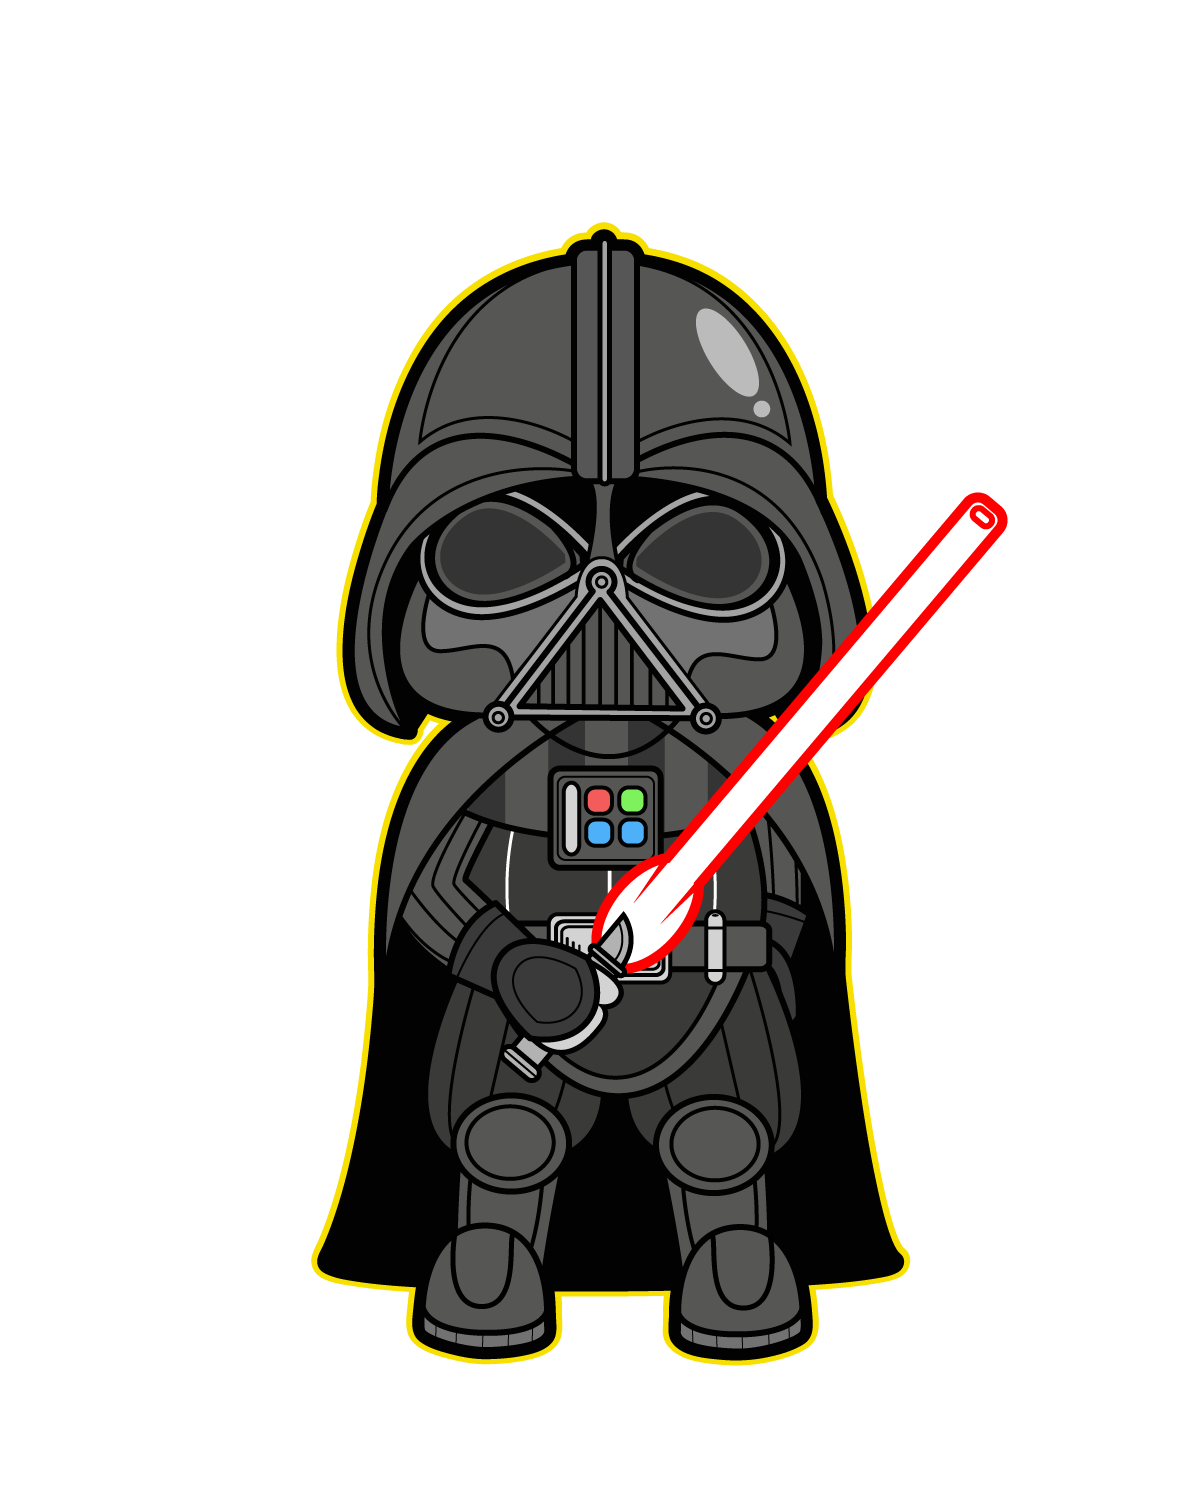 Darth vader clipart animated series. Cliparts for free ultra